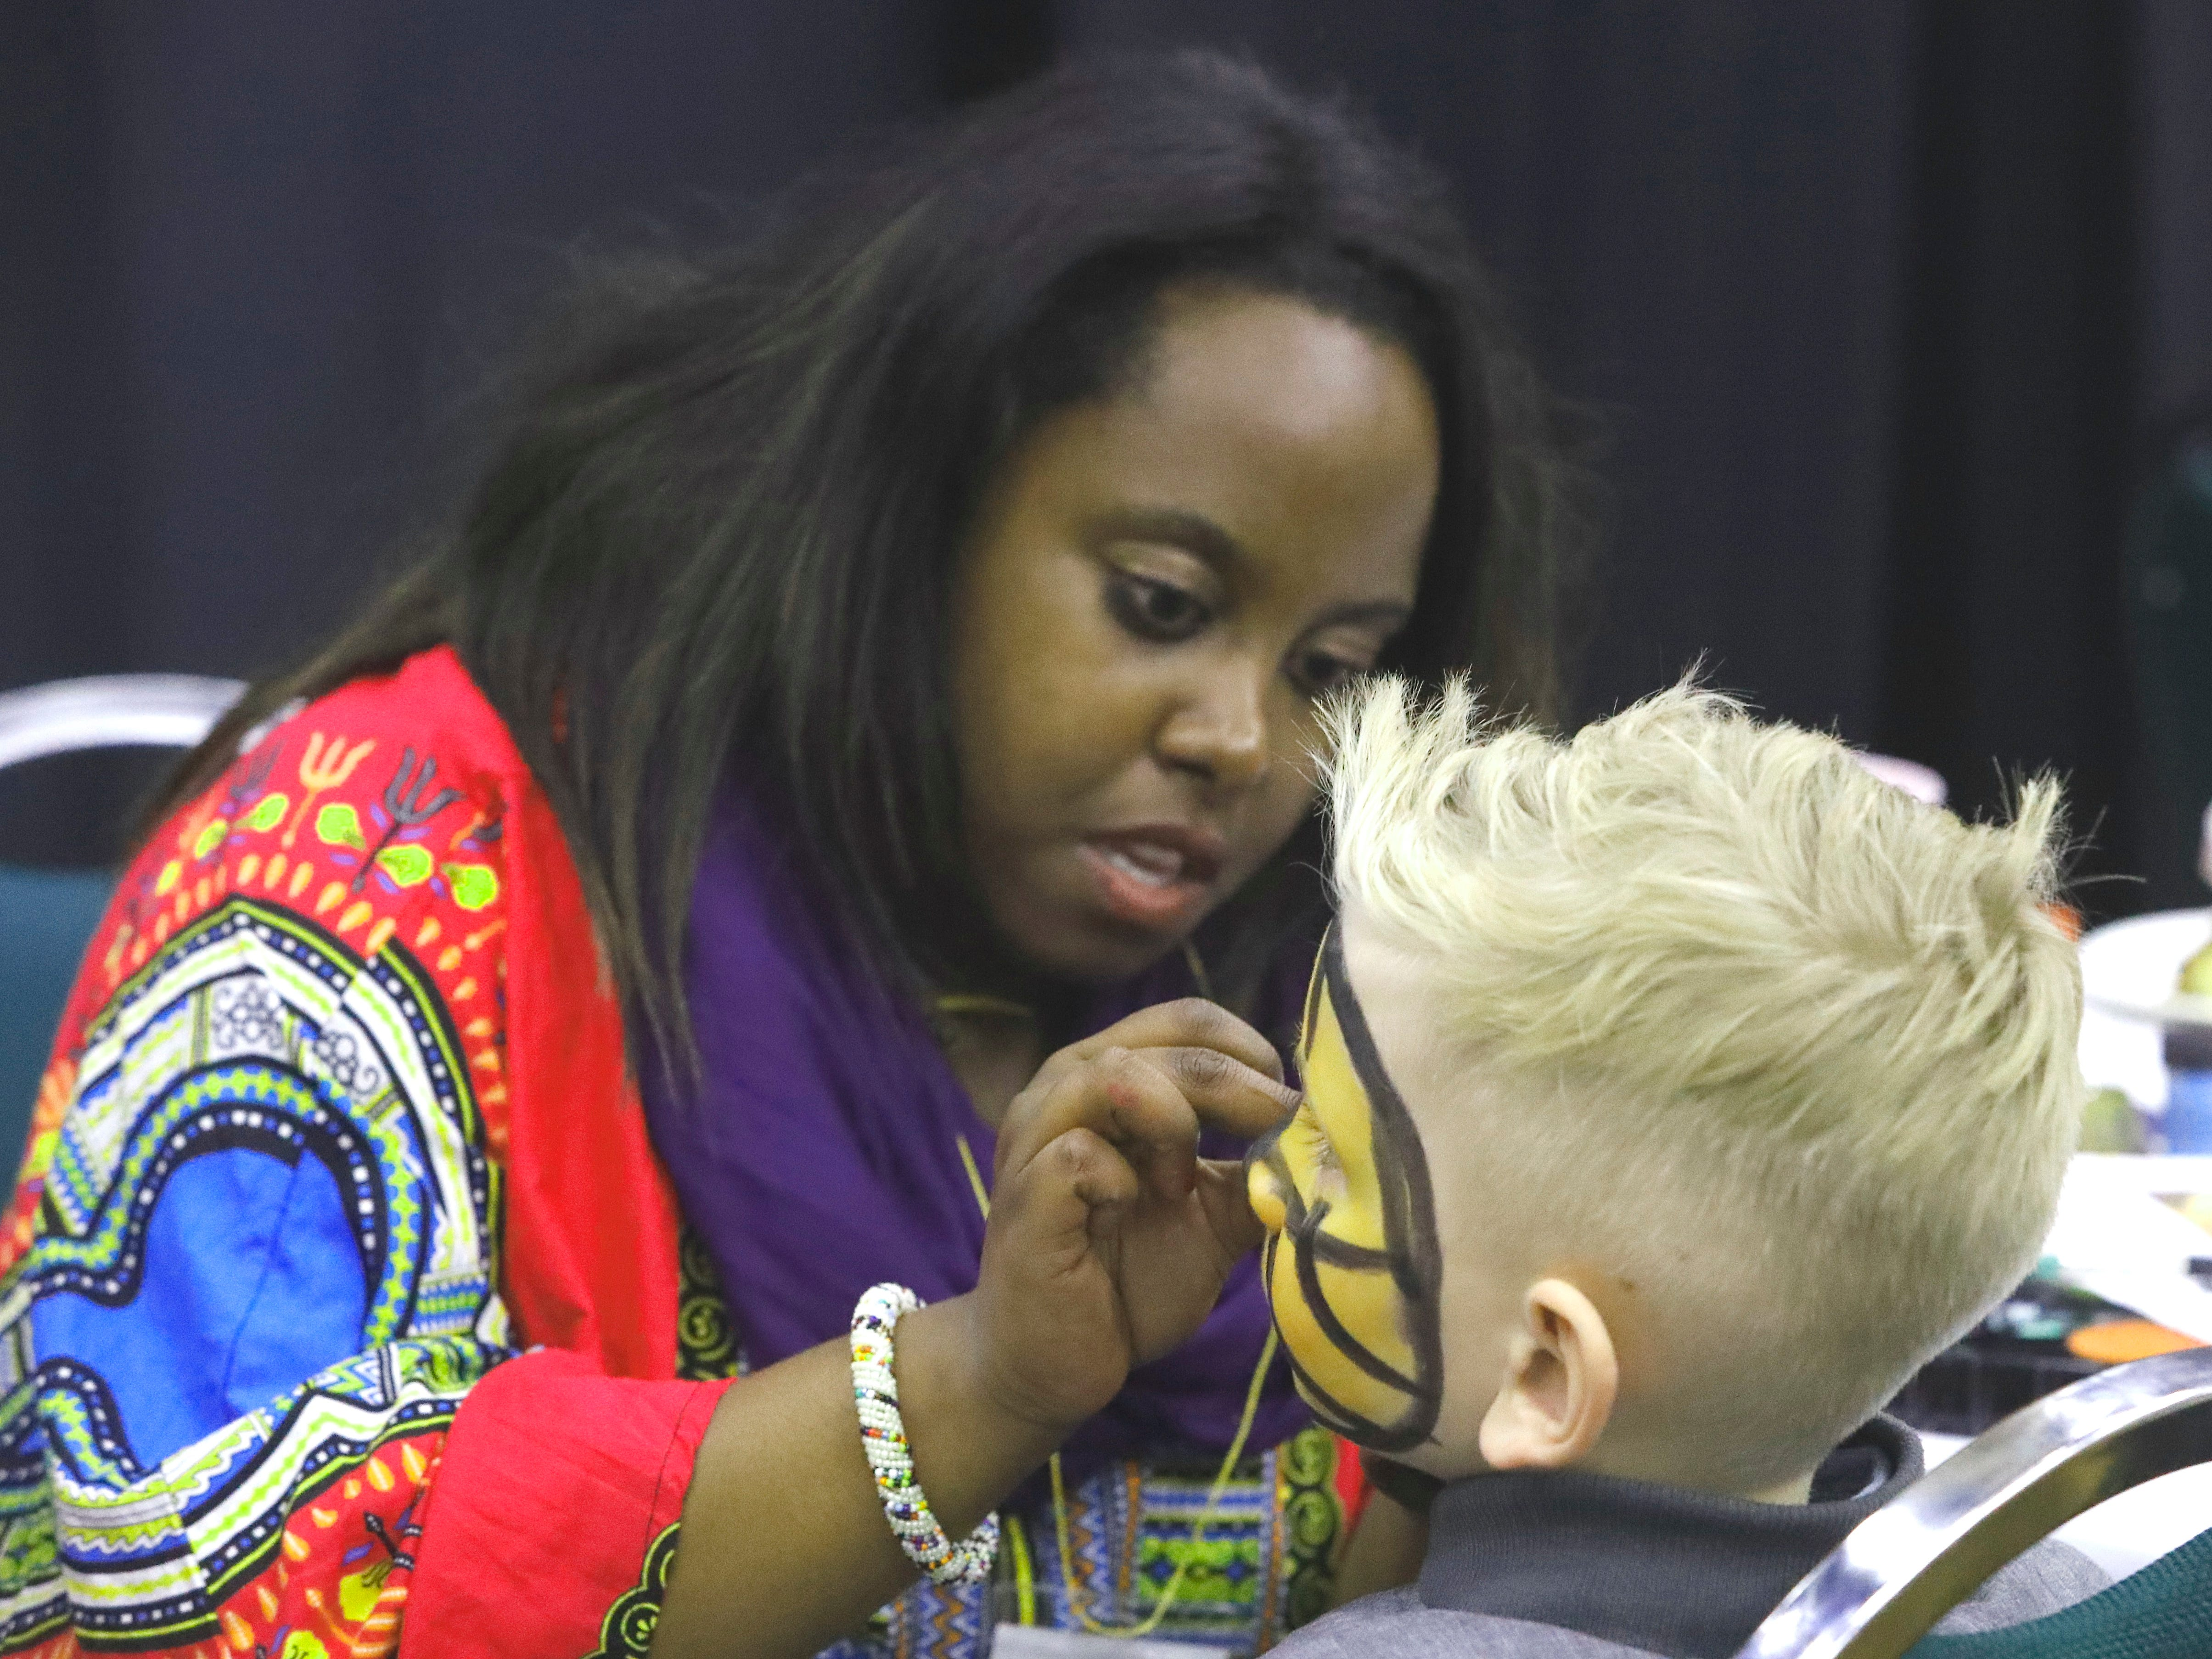 Njeri Mwaniki of the United States, whose family is from Kenya, does face-painting during the Festival of Cultures hosted by Bethel Church on Feb. 9, 2019.